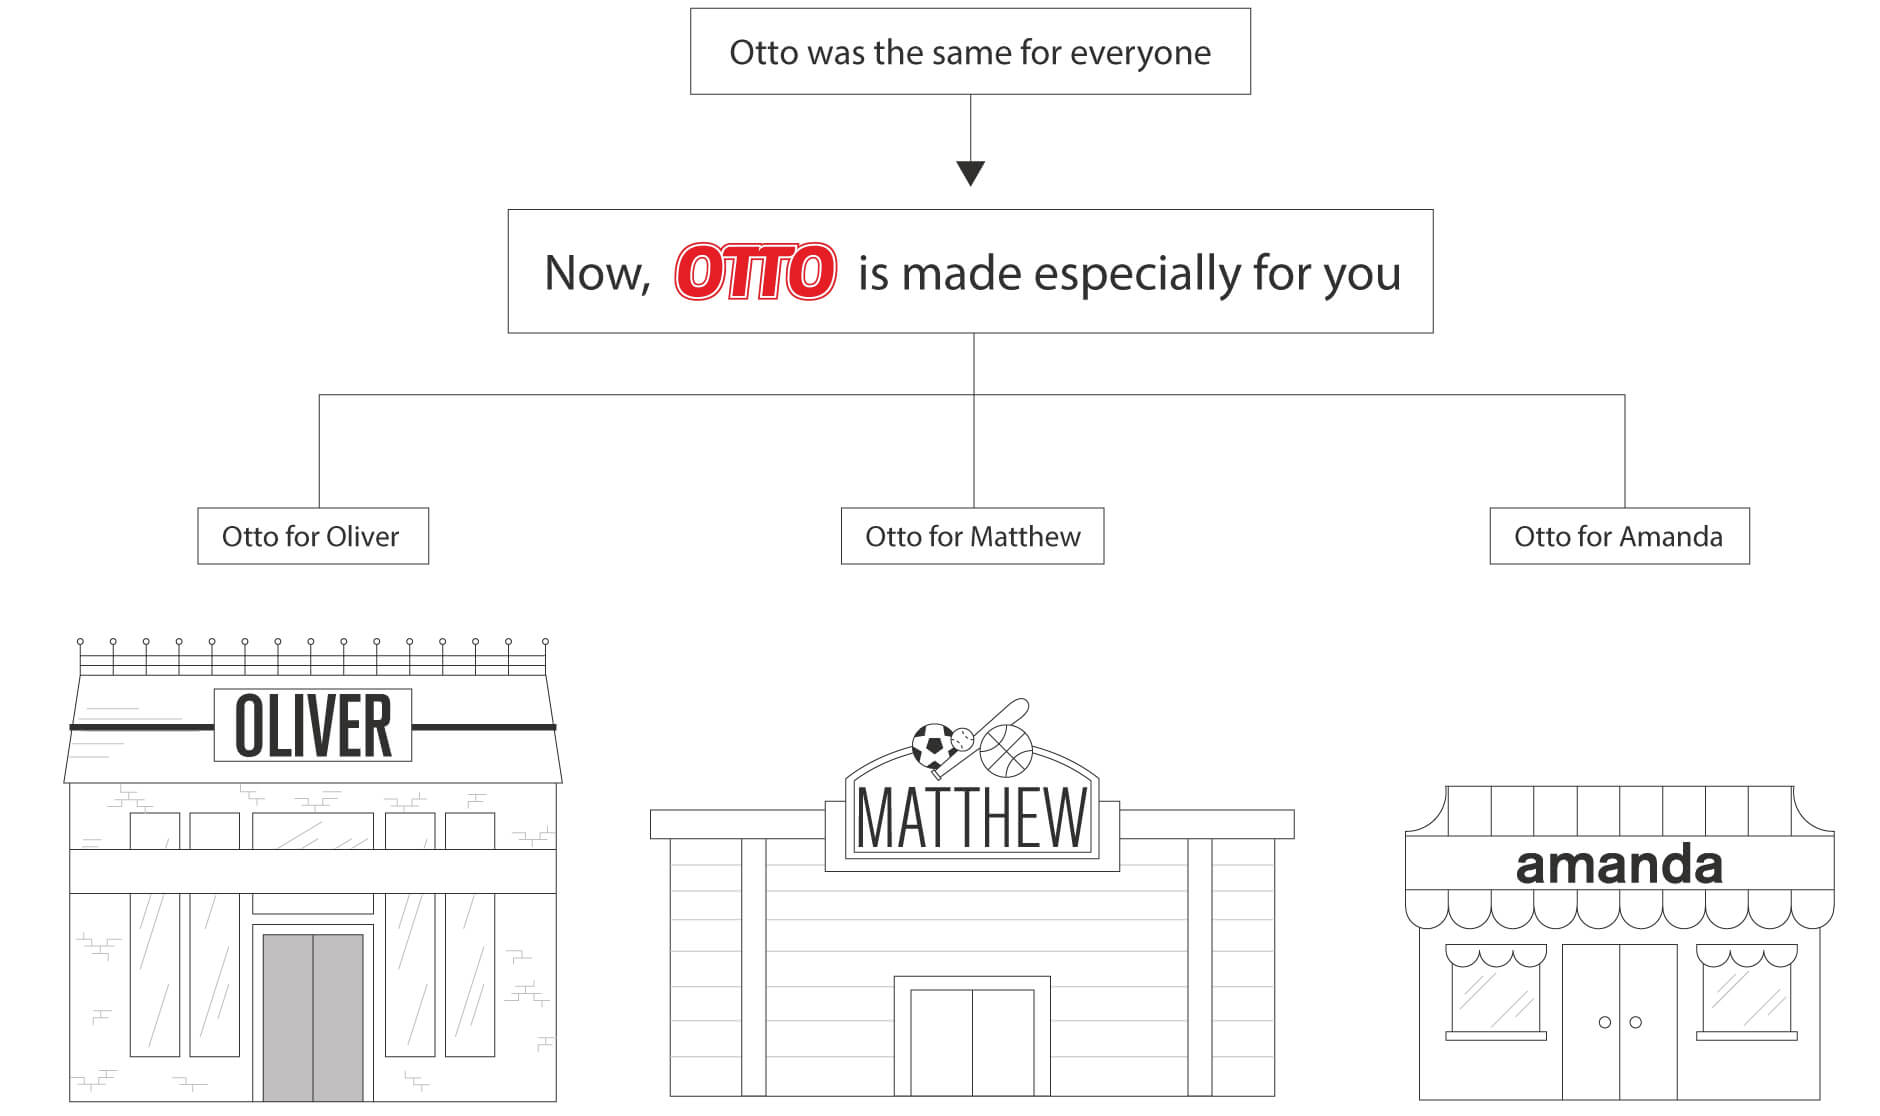 Otto personalized stores